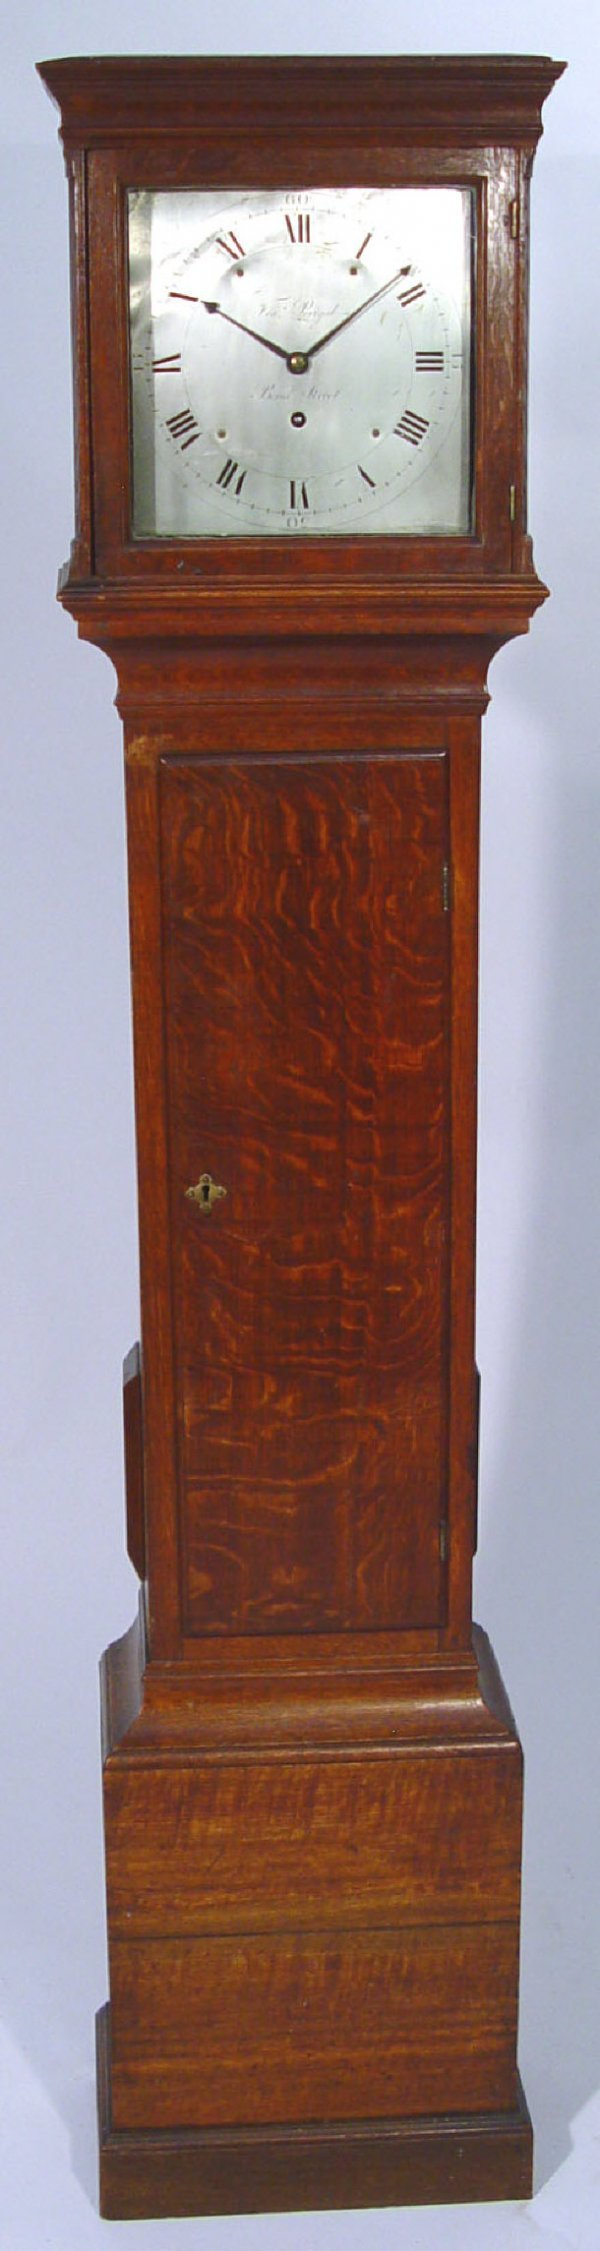 906: 19th century oak long case clock with 31 hour move